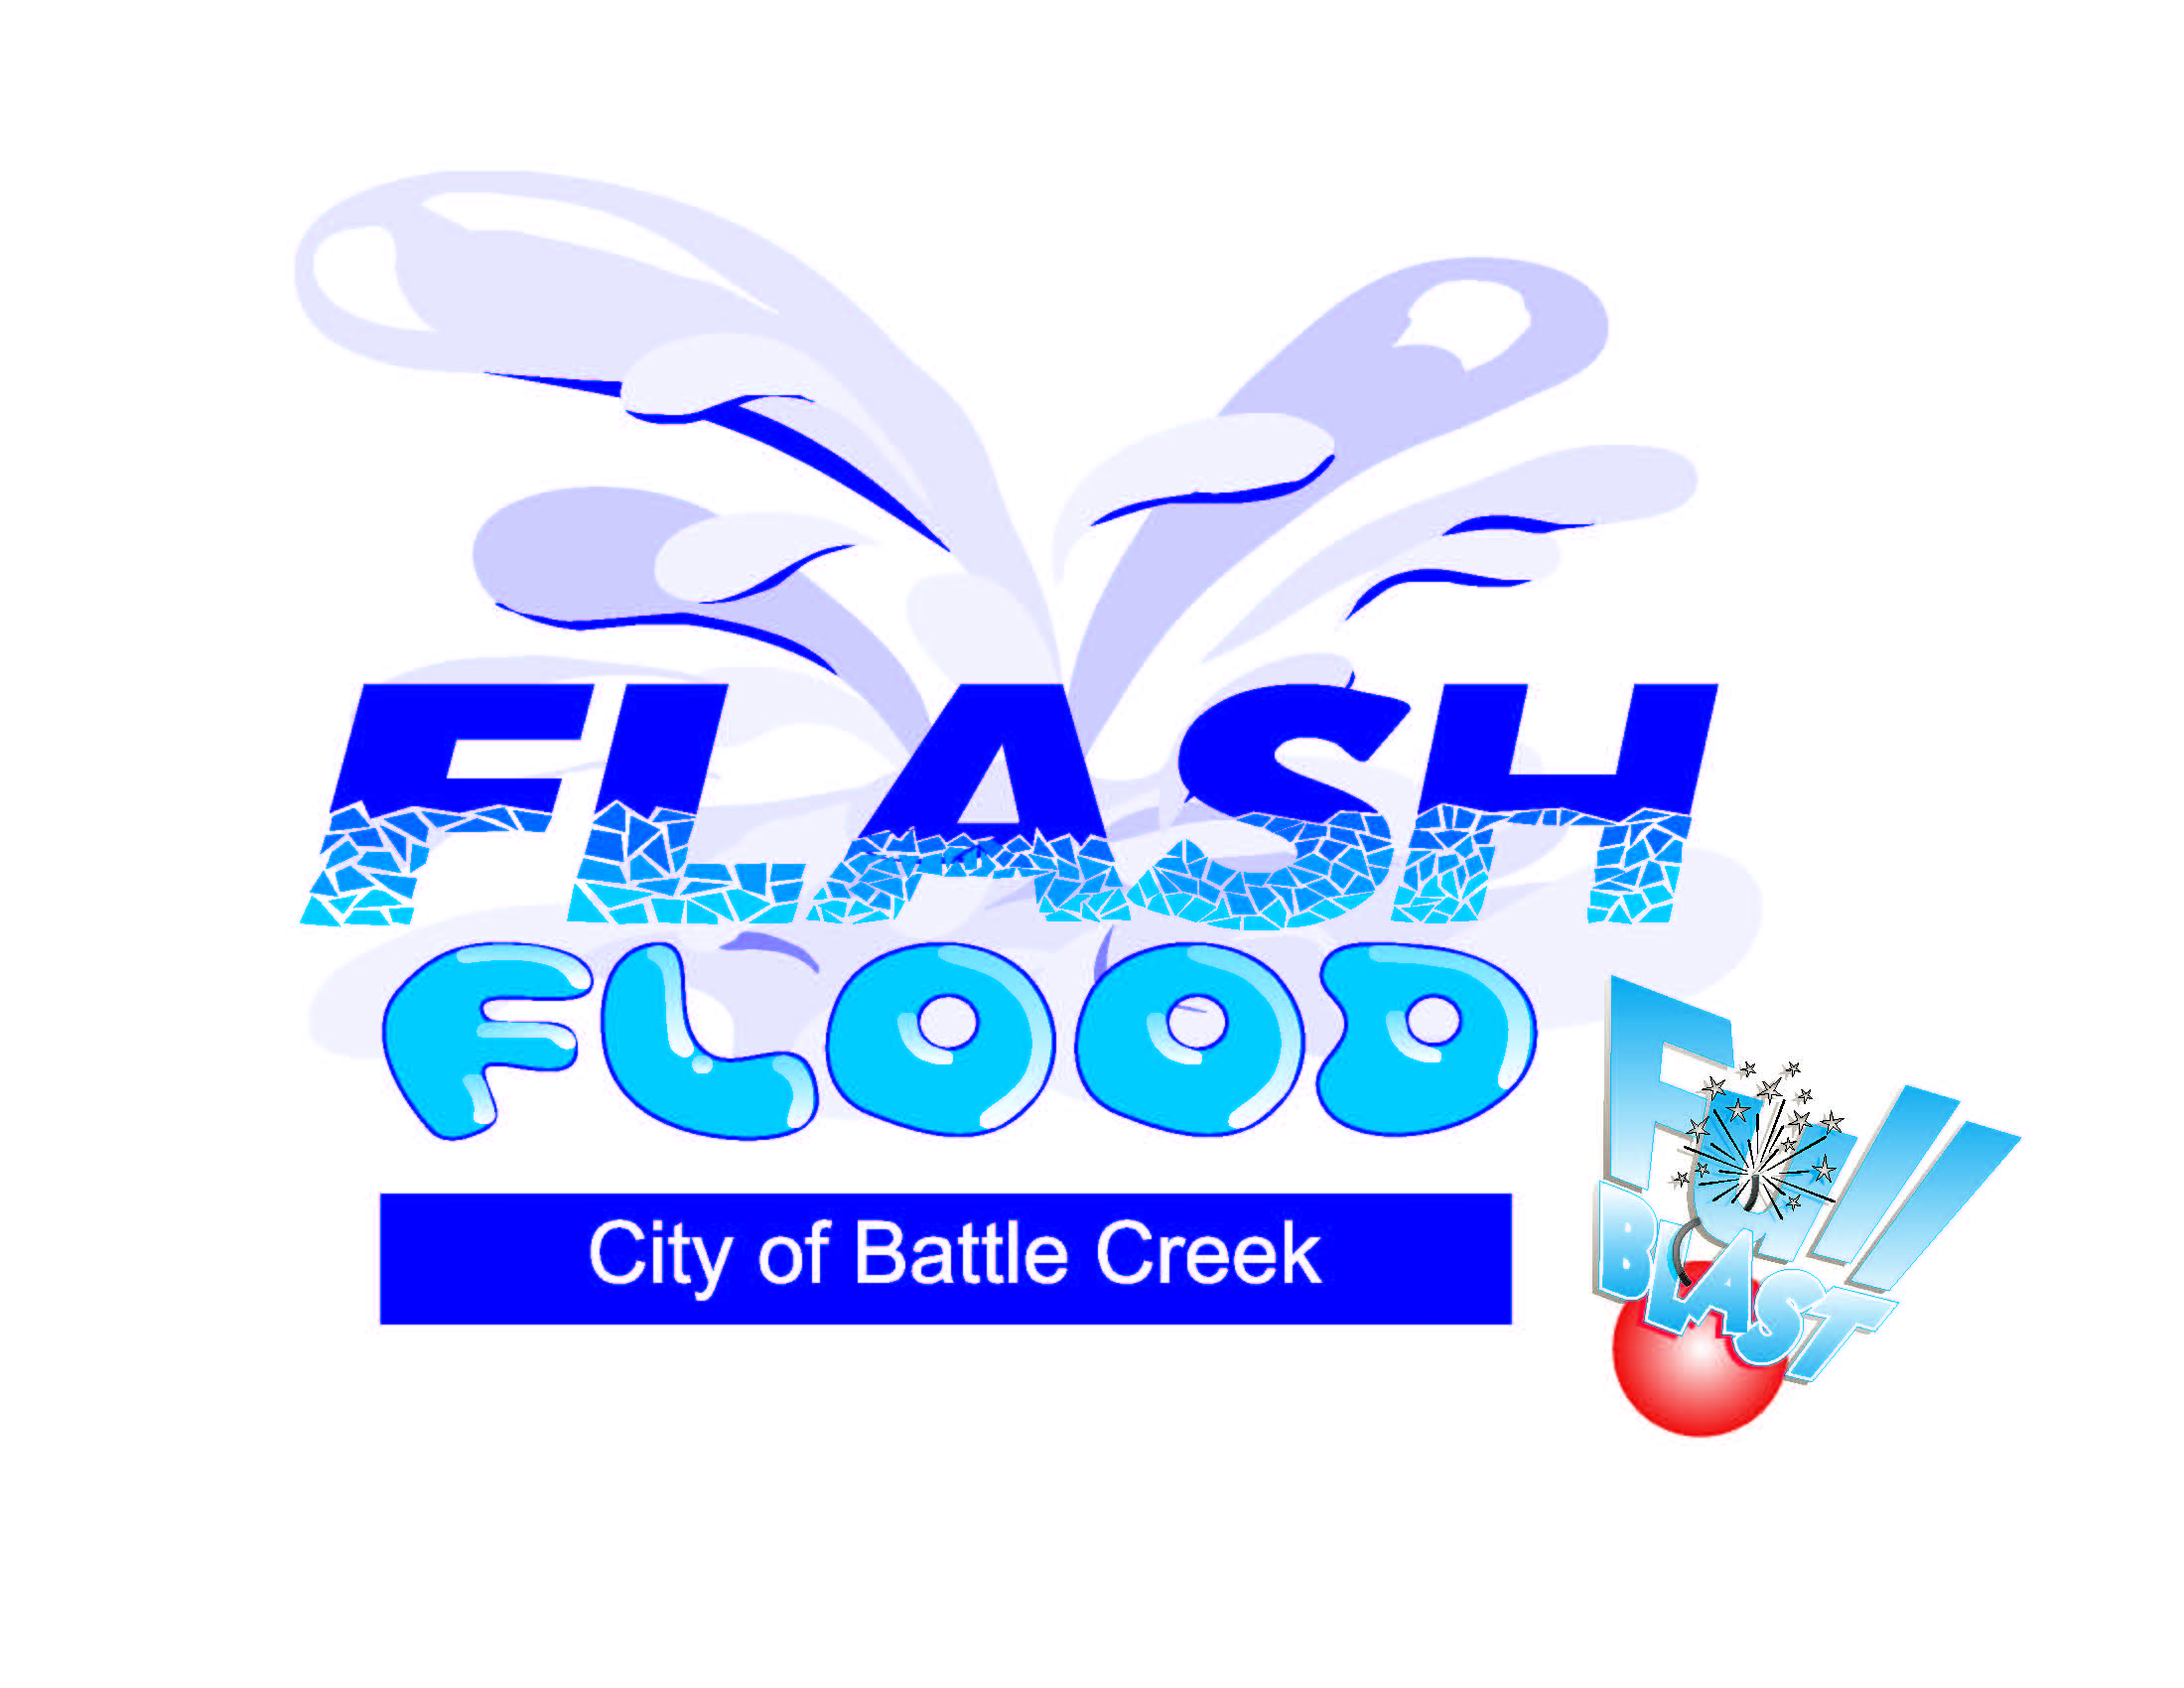 FLASHFLOOD logo